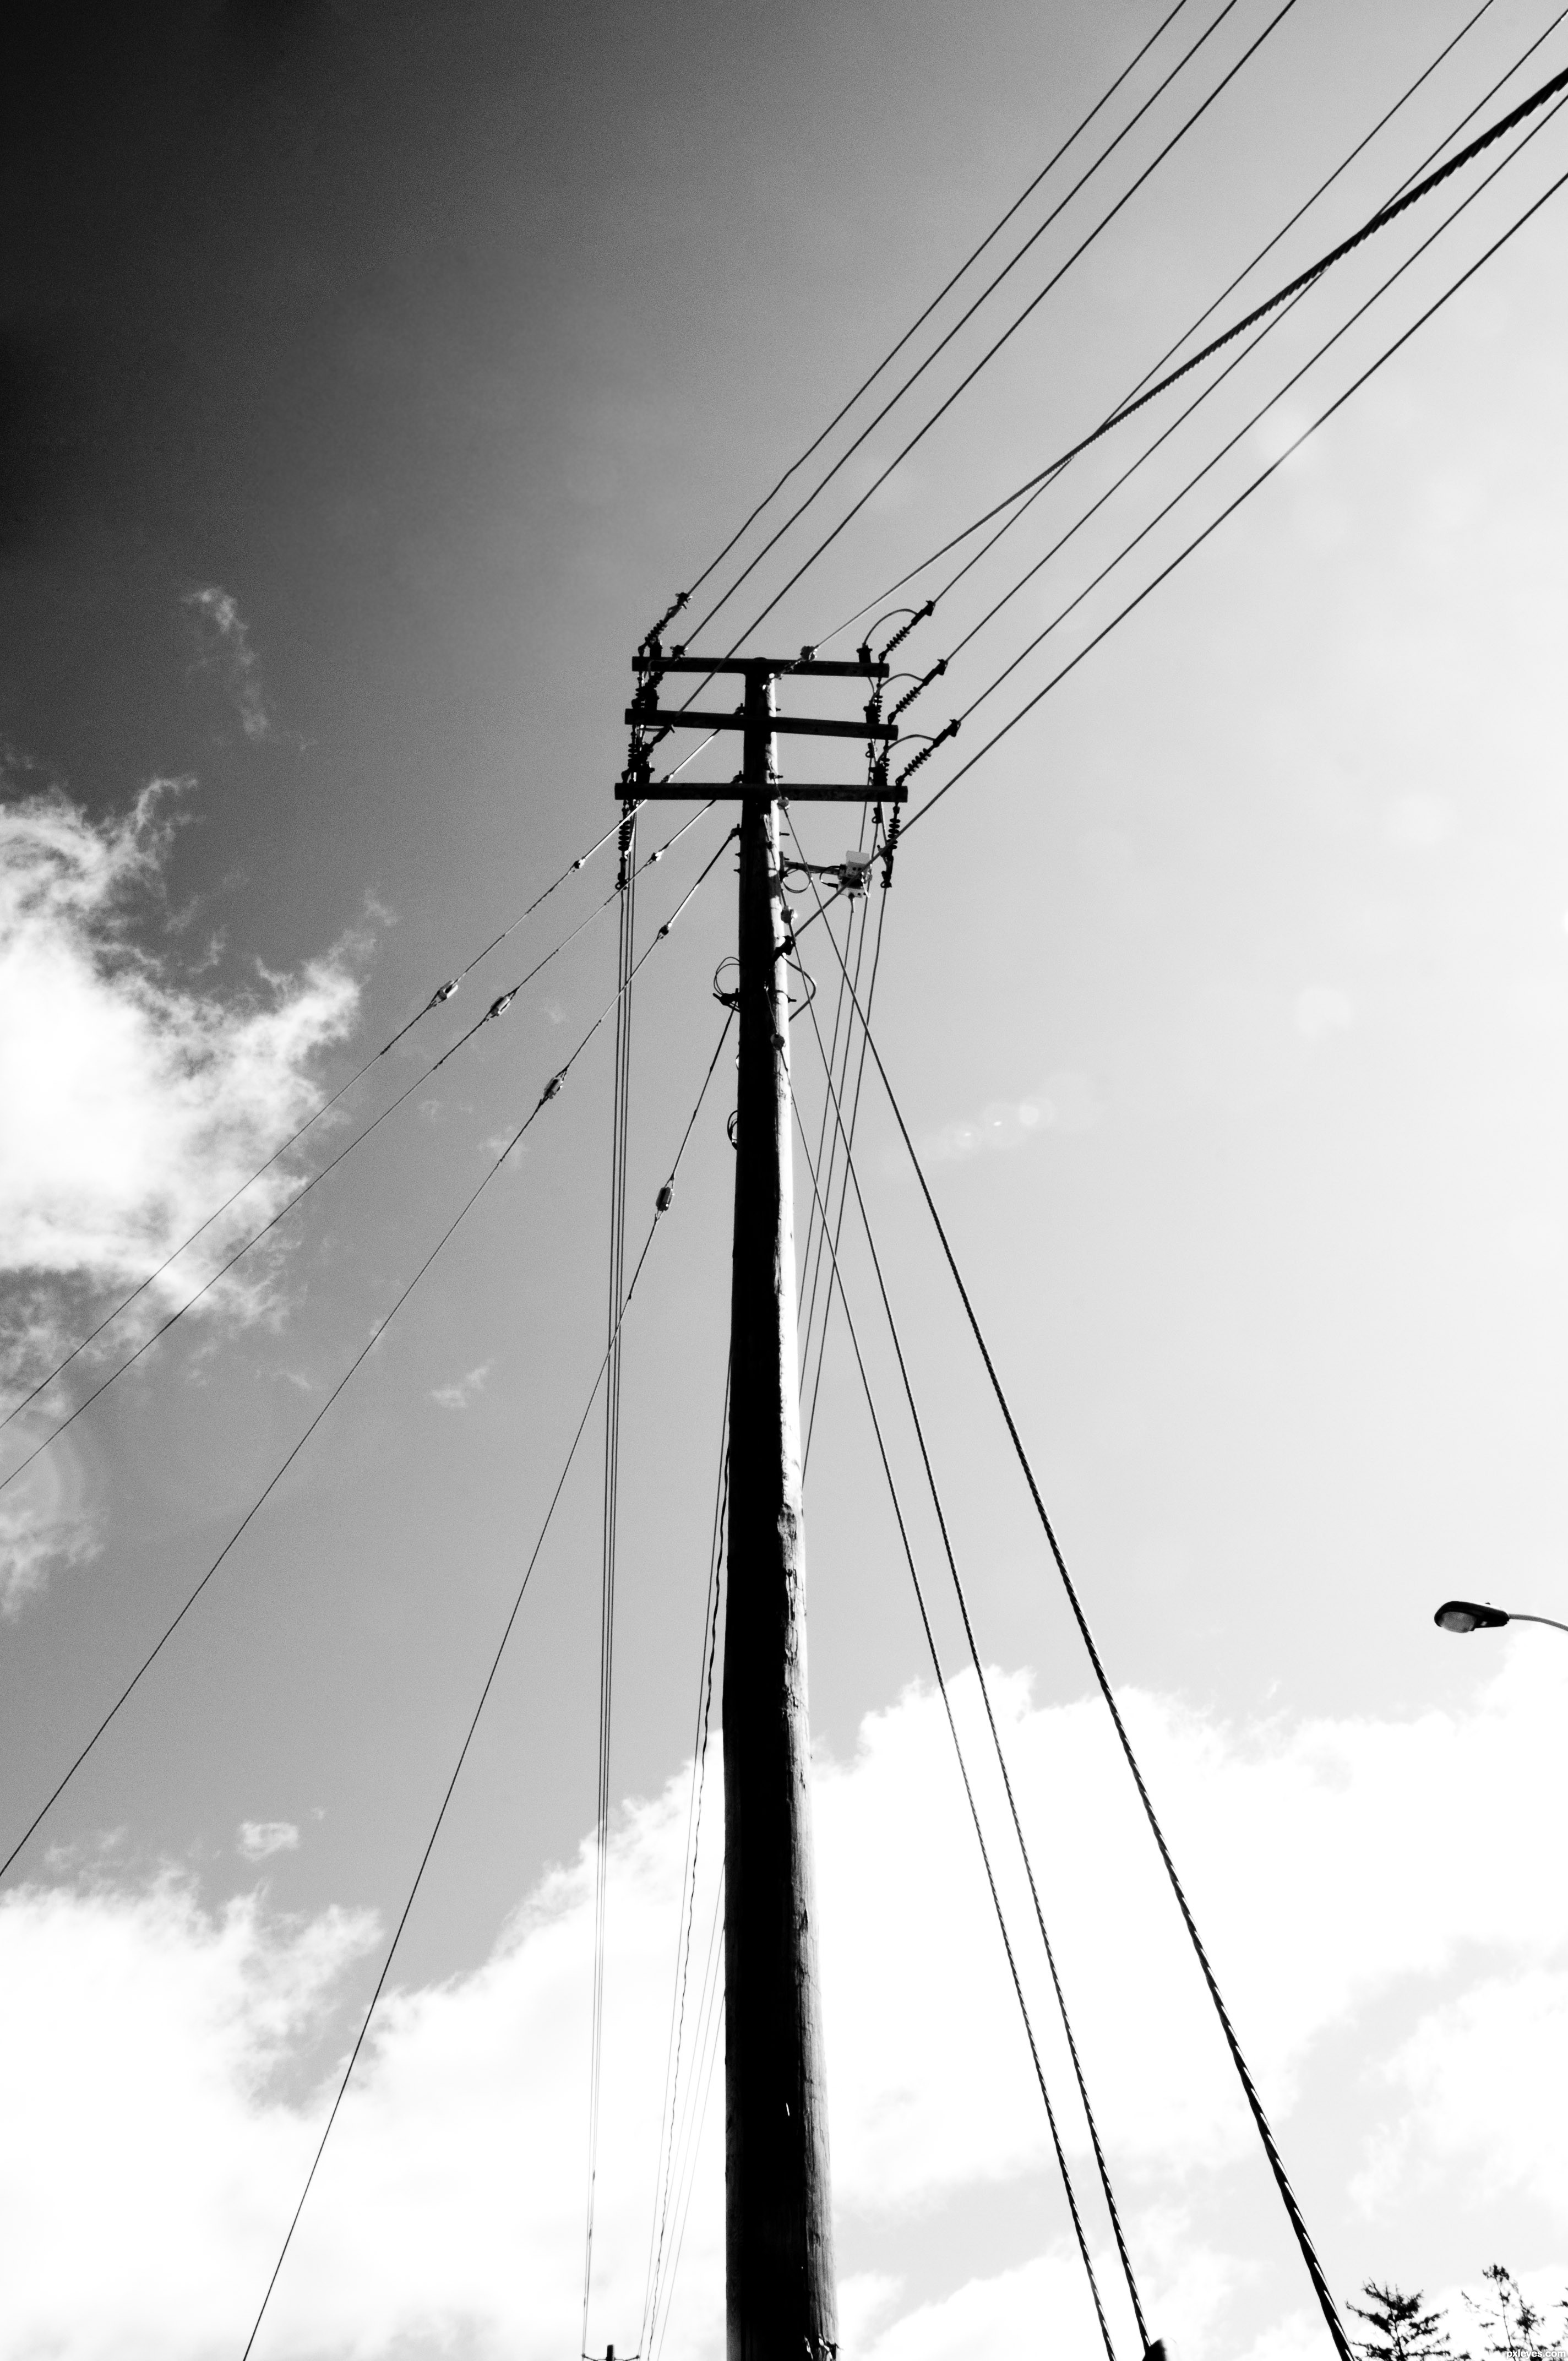 Electric Poles Power Lines : This is a power line pole picture by audreyj for